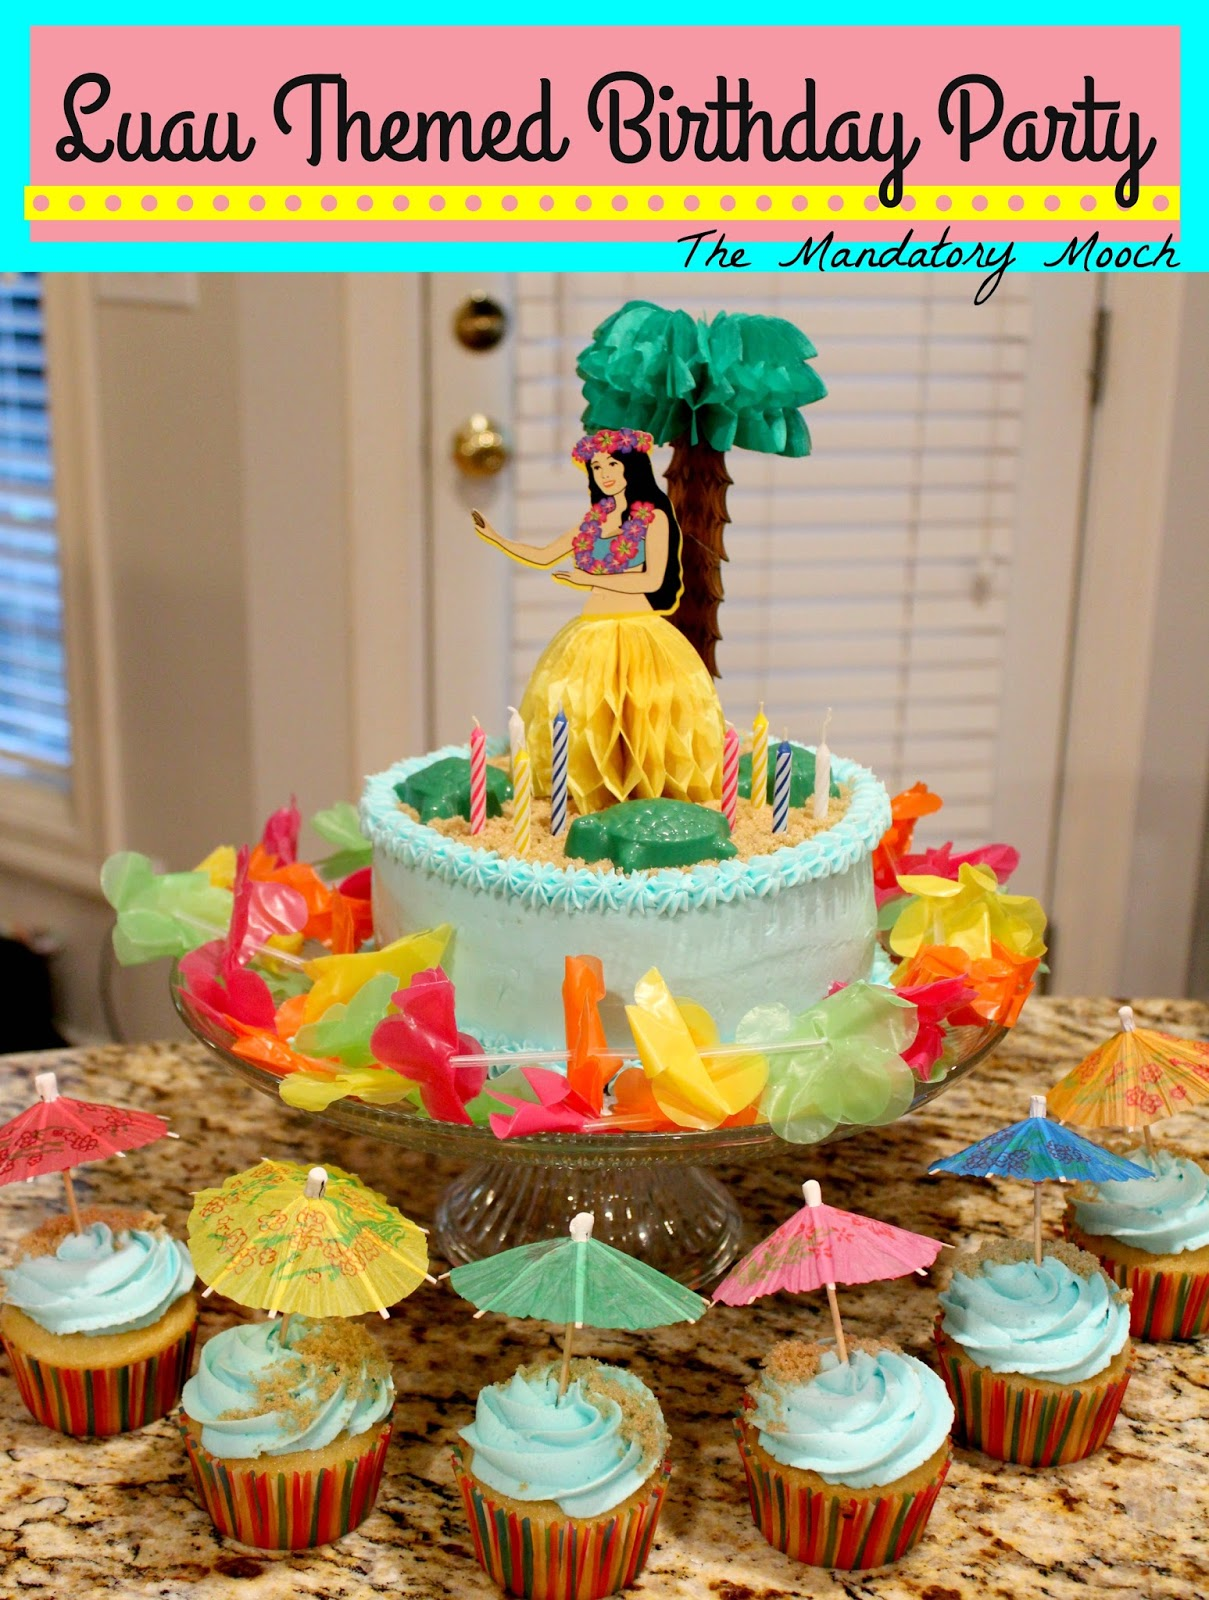 April In The Midwest Can Be Rainy Or Very Nice Just Depends On Day We Had Planned Having An Outdoor Birthday Party For My Daughter